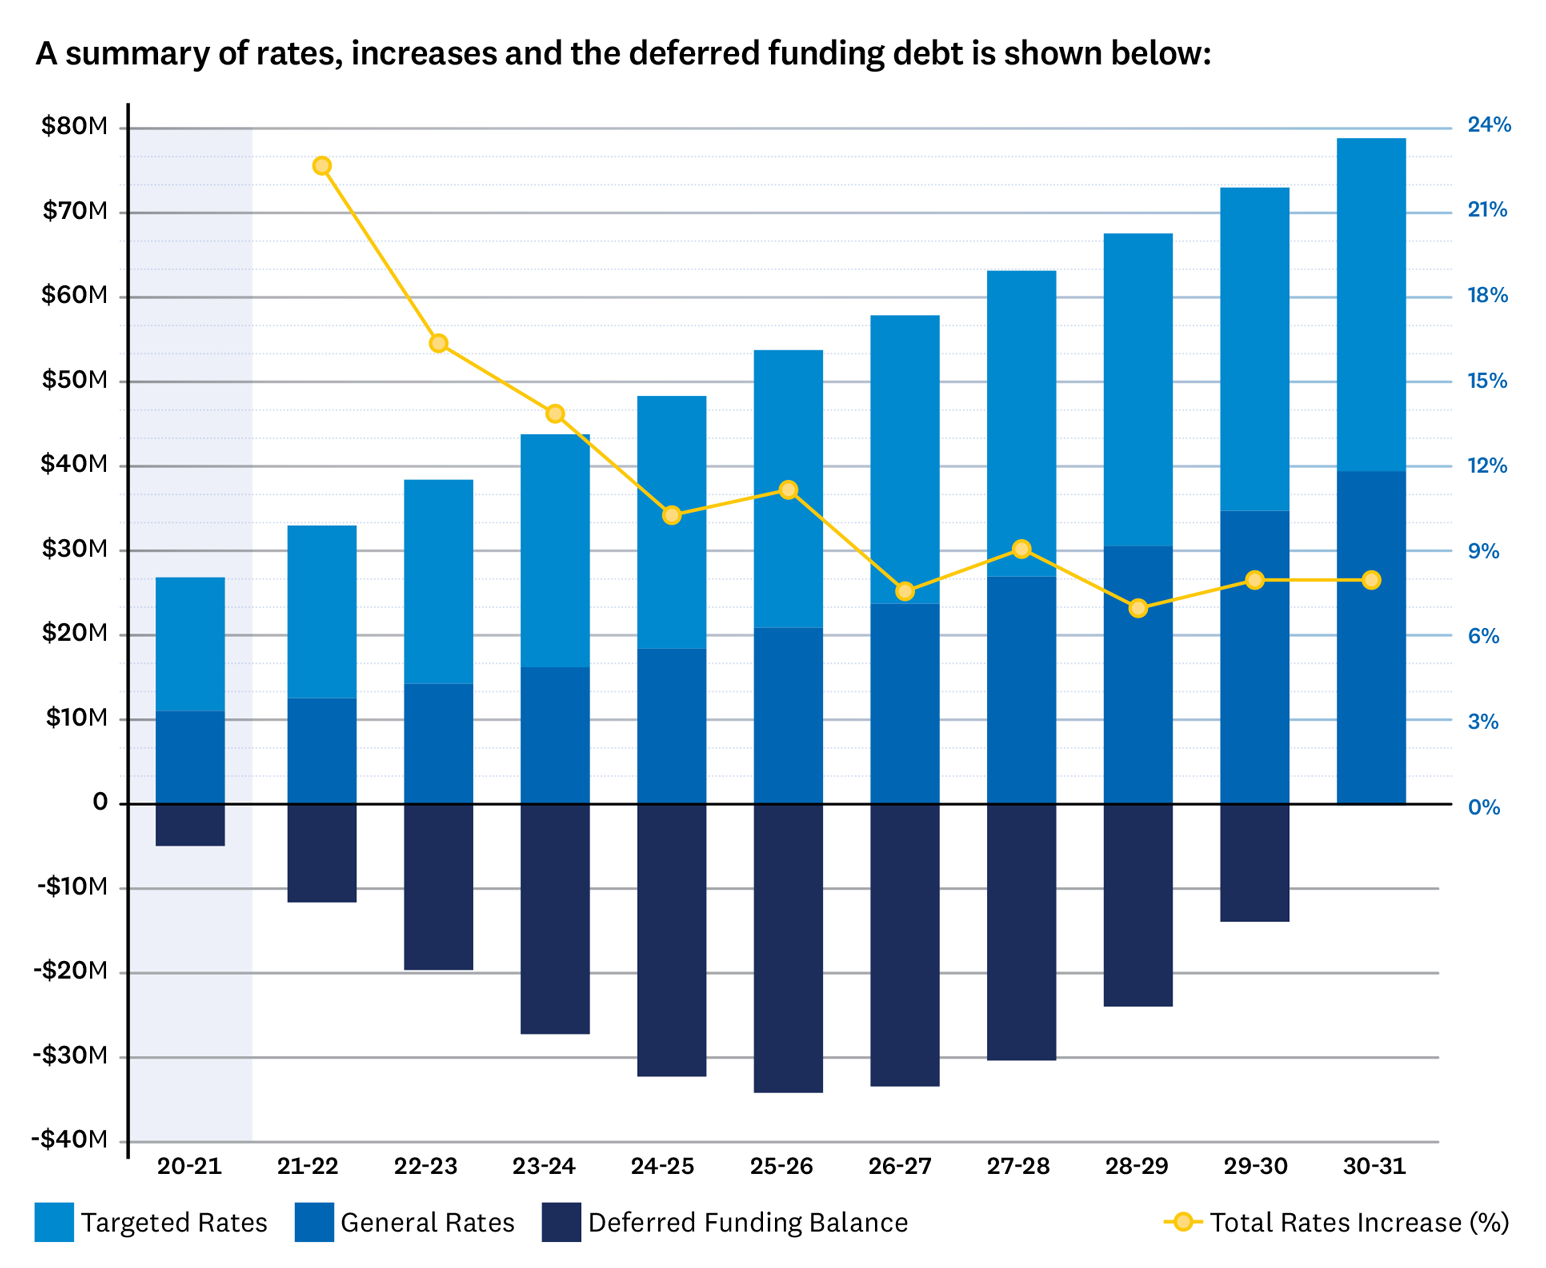 Graph showing the summary of rates, increases and the deferred funding debt over the next 10 years under Option 2. In year 1 it shows an average rates increase of 22.7% or total rates charged being $39,763,000, comprising of $19,365,000 in general rates and $20,398,000 in targeted rates. There is a deferred funding balance of negative $11,564,000. Year 2 shows an average rates increase of 16.4% or total rates charged being $38,503,000, comprising of $14,391,000 in general rates and $24,112,000 in targeted rates. There is a deferred funding balance of negative $19,580,000. Year 3 shows an average rates increase of 13.9% or total rates charged being $43,866,000, comprising of $16,327,000 in general rates and $27,539,000 in targeted rates. There is a deferred funding balance of negative $27,173,000. Year 4 shows an average rates increase of 10.3% or total rates charged being $48,398,000, comprising of $18,524,000 in general rates and $29,874,000 in targeted rates. There is a deferred funding balance of negative $32,195,000. Year 5 shows an average rates increase of 11.2% or total rates charged being $53,829,000, comprising of $21,016,000 in general rates and $32,813,000 in targeted rates. There is a deferred funding balance of negative $34,115,000. Year 6 shows an average rates increase of 7.6% or total rates charged being $57,938,000, comprising of $23,844,000 in general rates and $34,094,000 in targeted rates. There is a deferred funding balance of negative $33,364,000. Year 7 shows an average rates increase of 9.1% or total rates charged being $63,210,000, comprising of $27,052,000 in general rates and $36,158,000 in targeted rates. There is a deferred funding balance of negative $30,294,000. Year 8 shows an average rates increase of 7.0% or total rates charged being $67,612,000, comprising of $30,692,000 in general rates and $36,920,000 in targeted rates. There is a deferred funding balance of negative $23,903,000. Year 9 shows an average rates increase of 8.0% or 